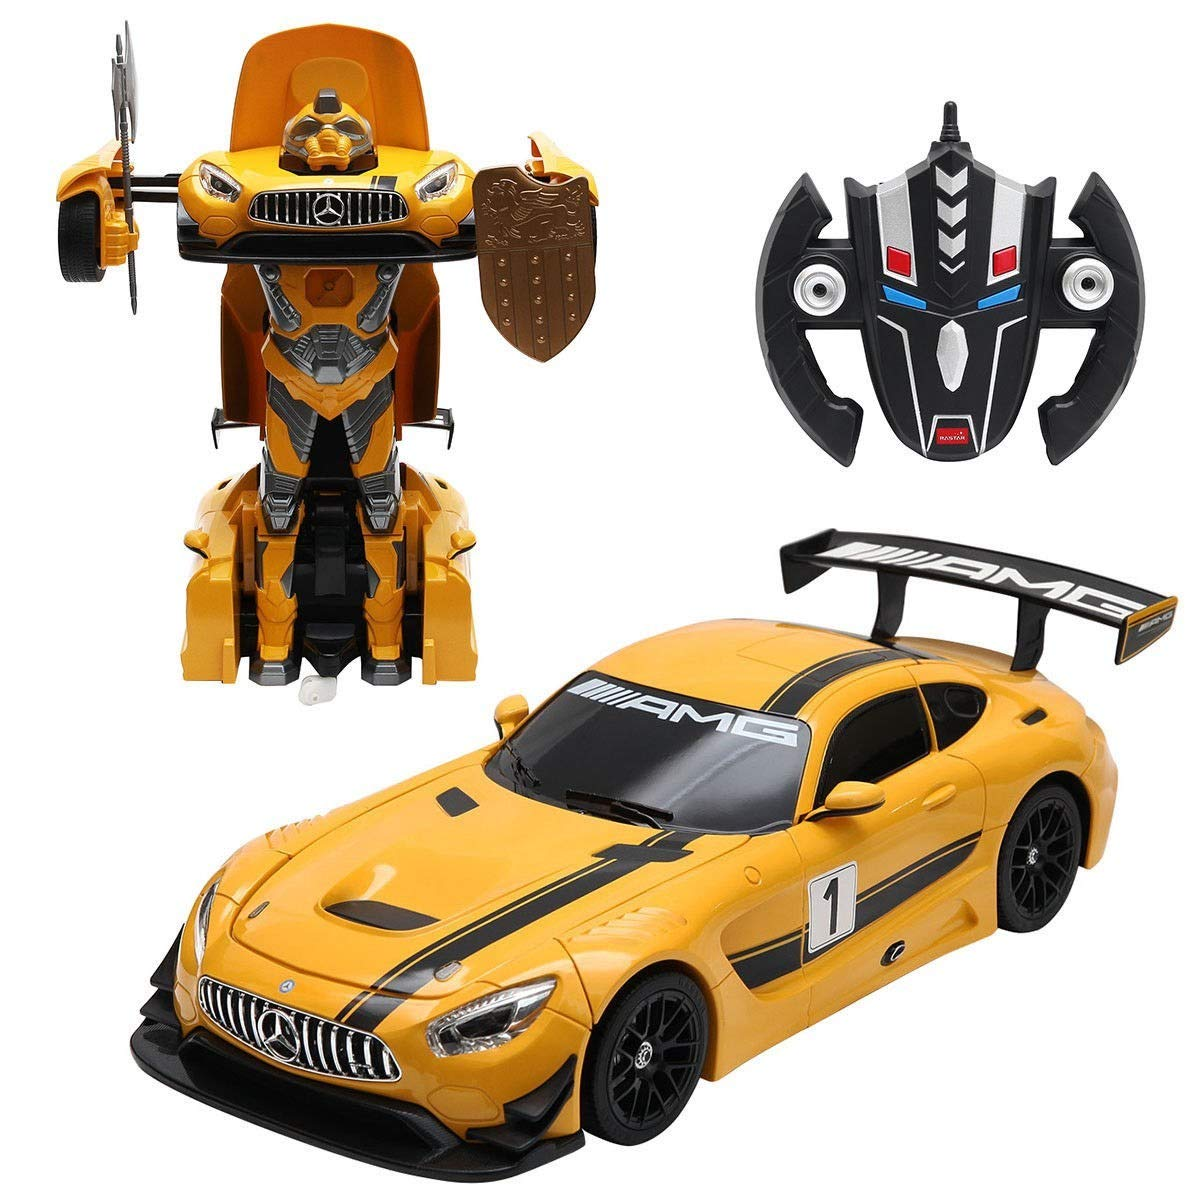 PowerTRC 1:14 Mercedes-Benz GT3 2.4ghz RC Transformer Dancing Robot Car Yellow